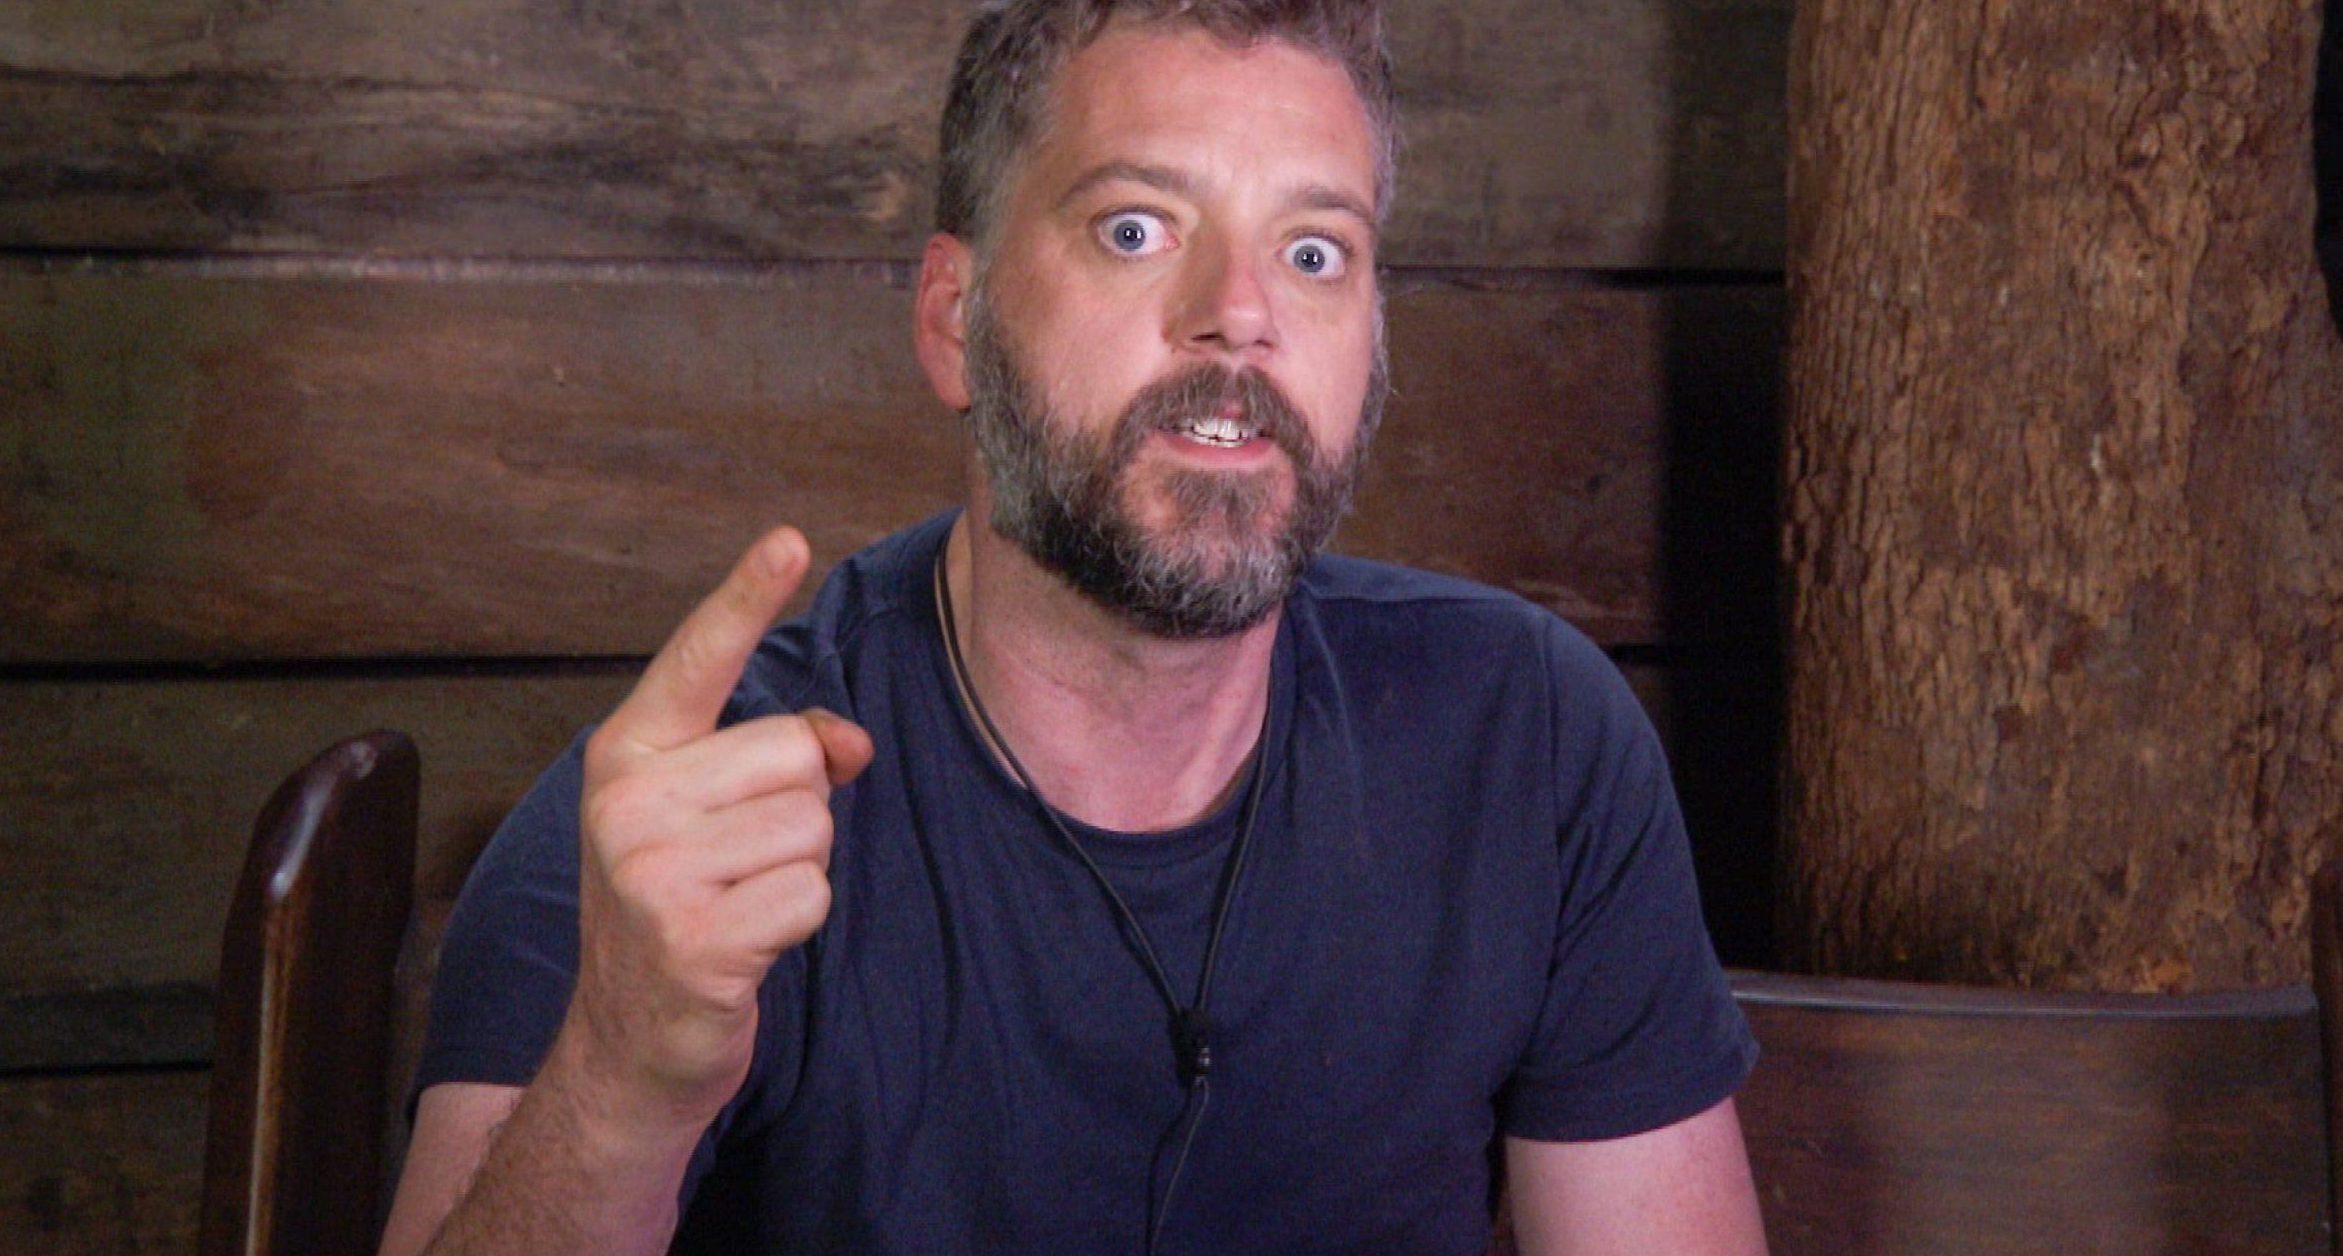 Iain Lee wants to 'cull all owls' after he's 'viciously attacked' and left bleeding